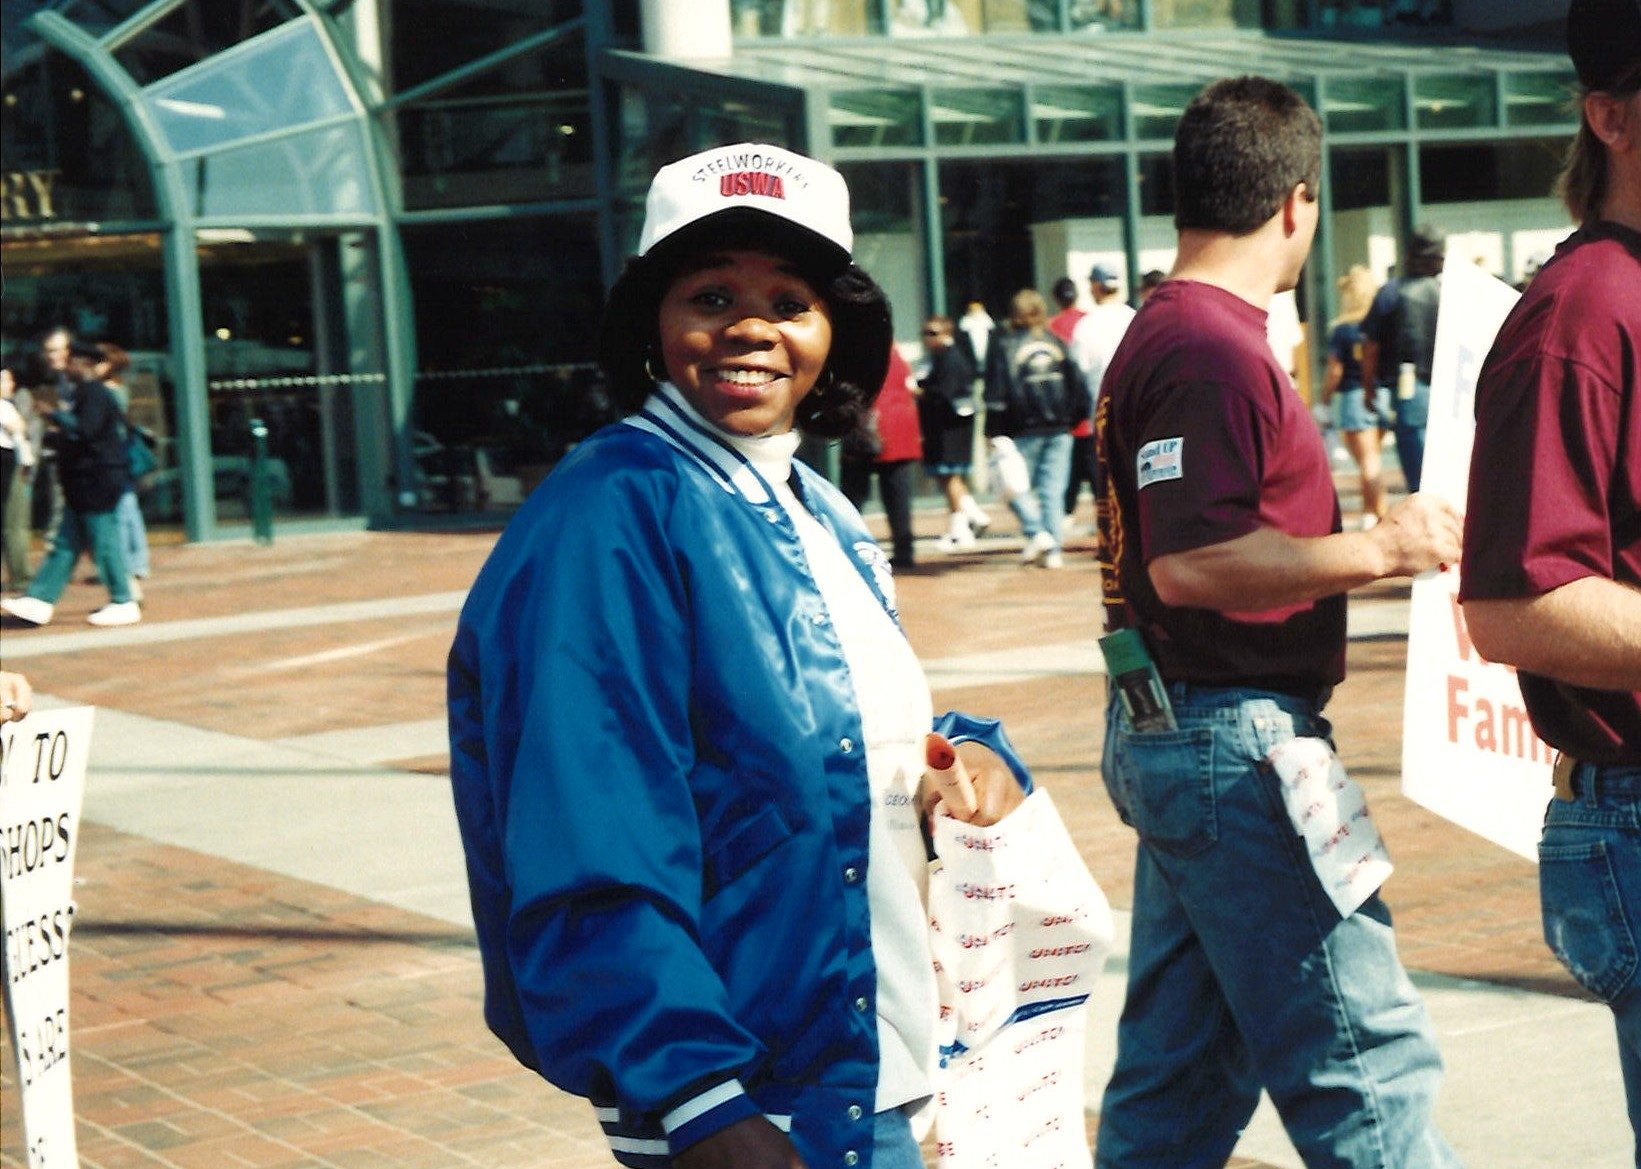 Color photo of Black woman in a blue jacket and a baseball cap.